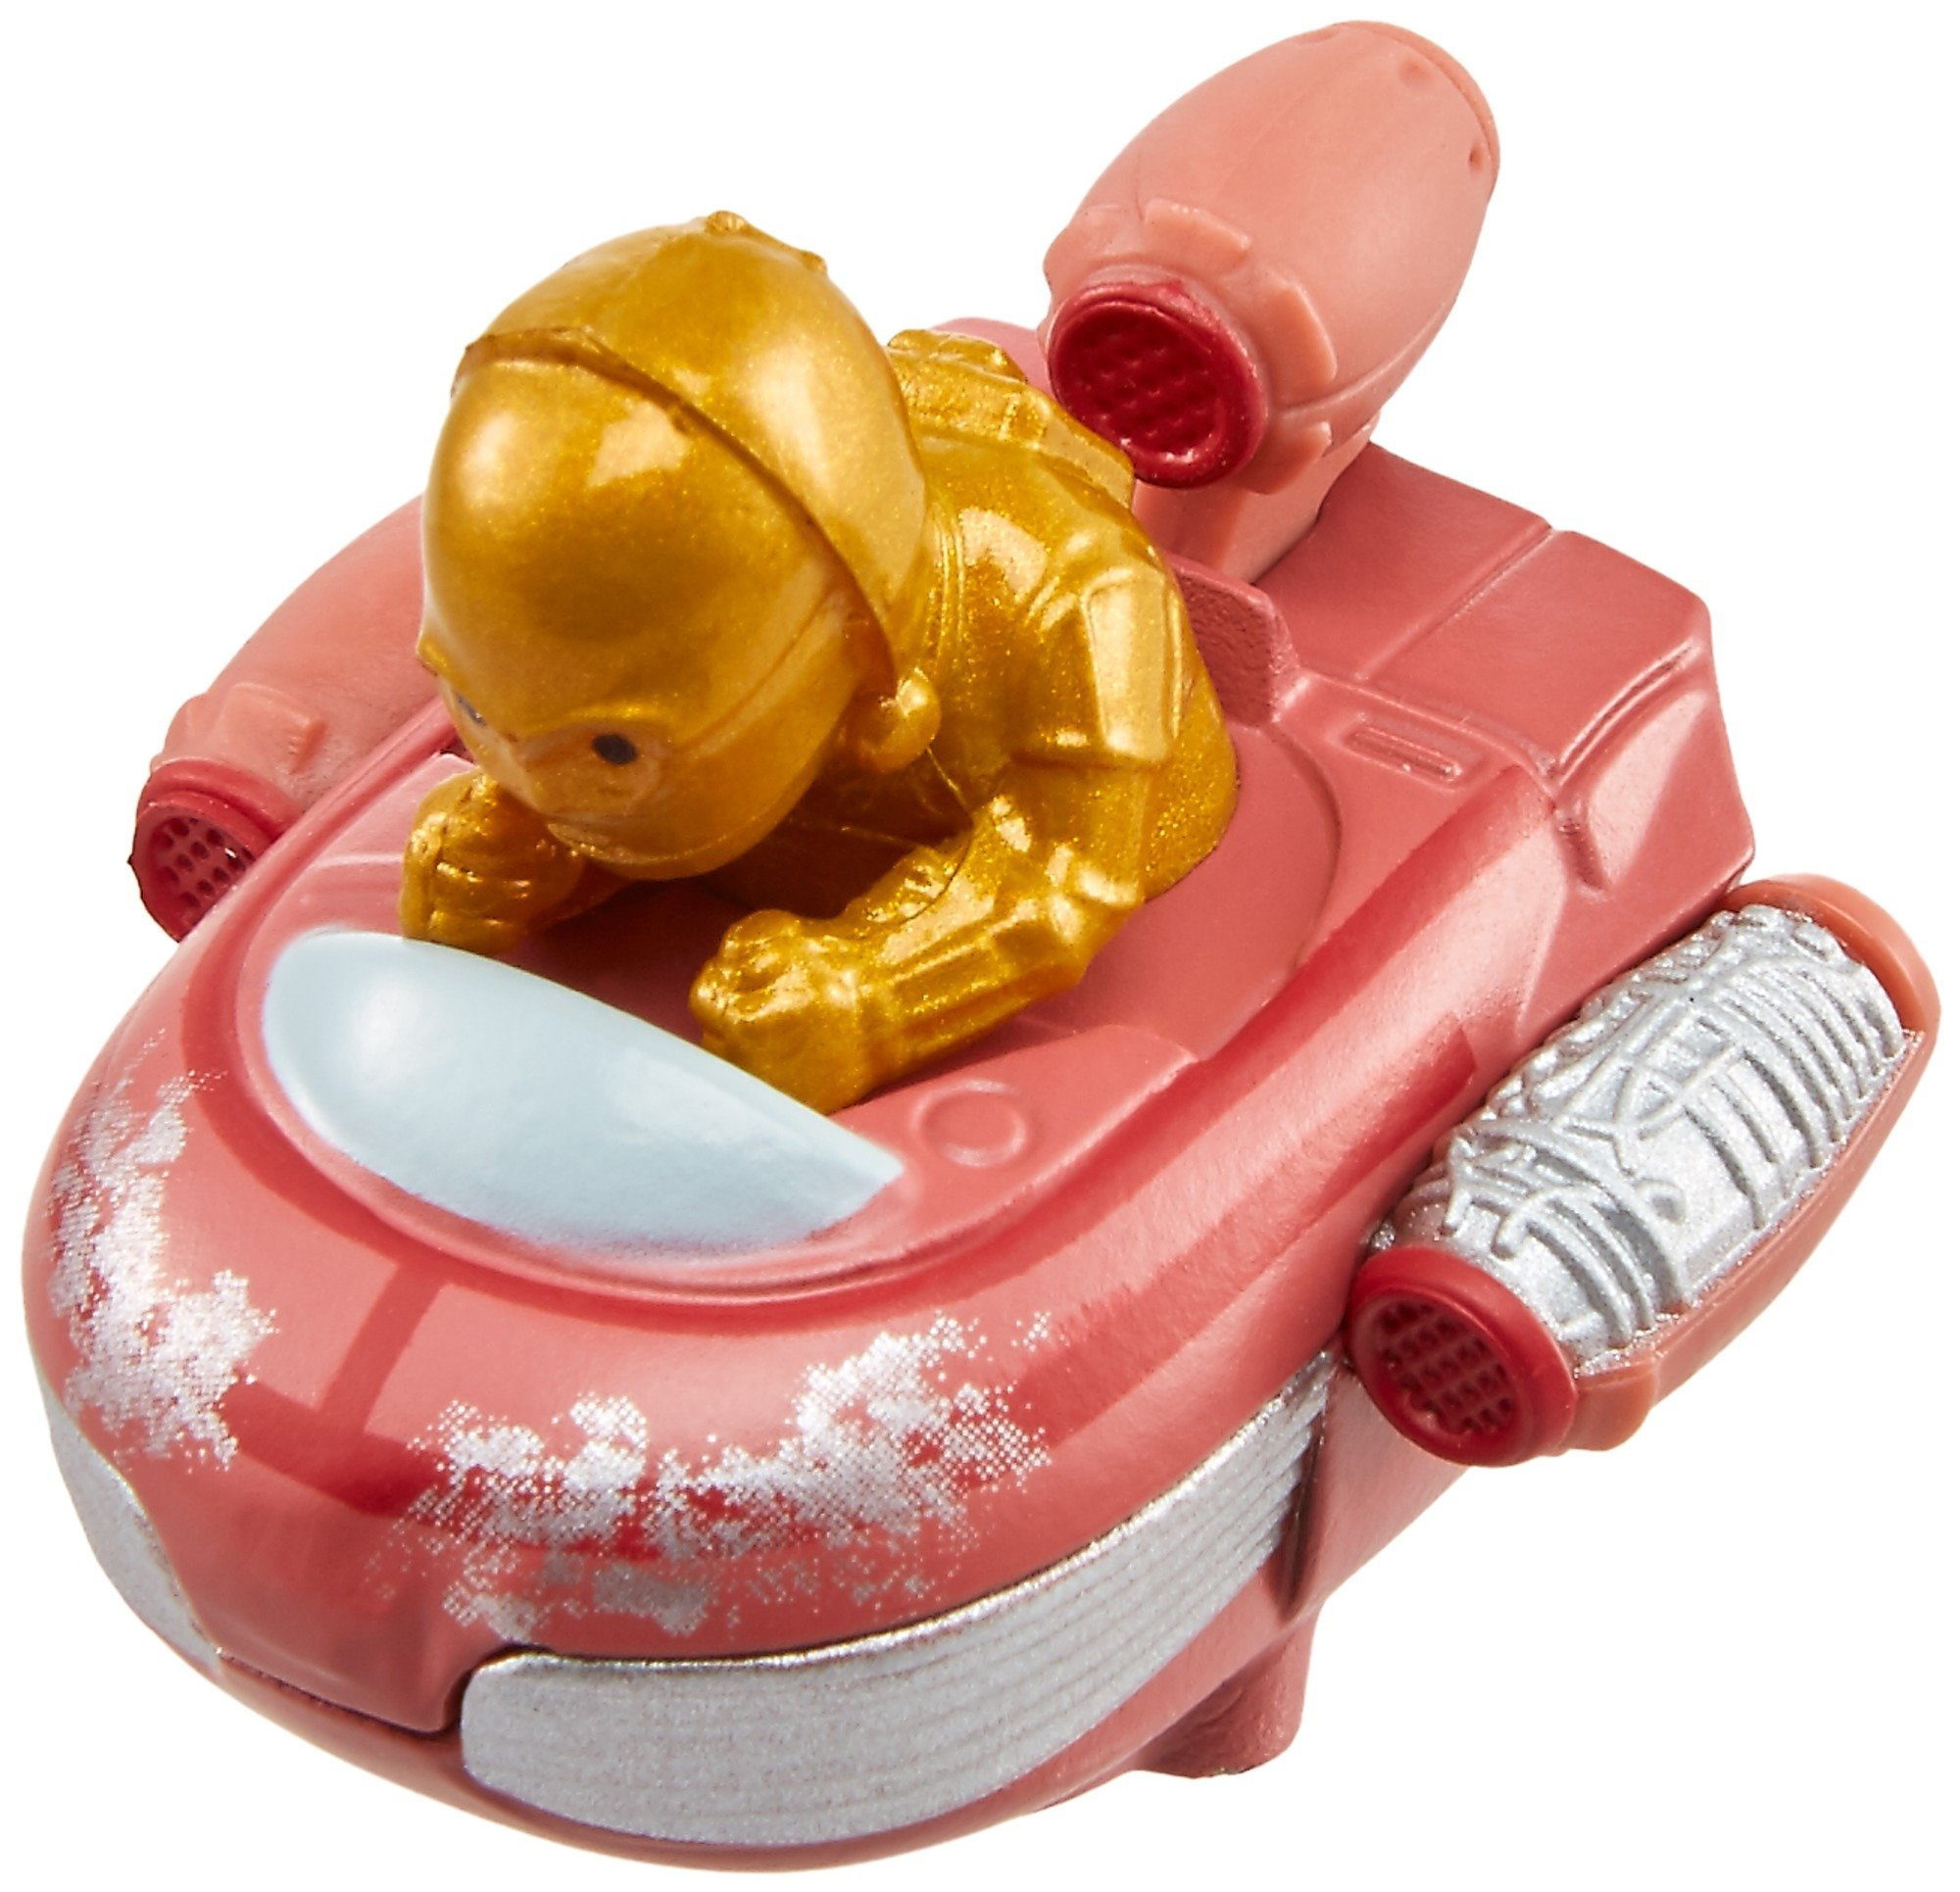 Hot Wheels Star Wars C-3PO Landspeeder, vehículo